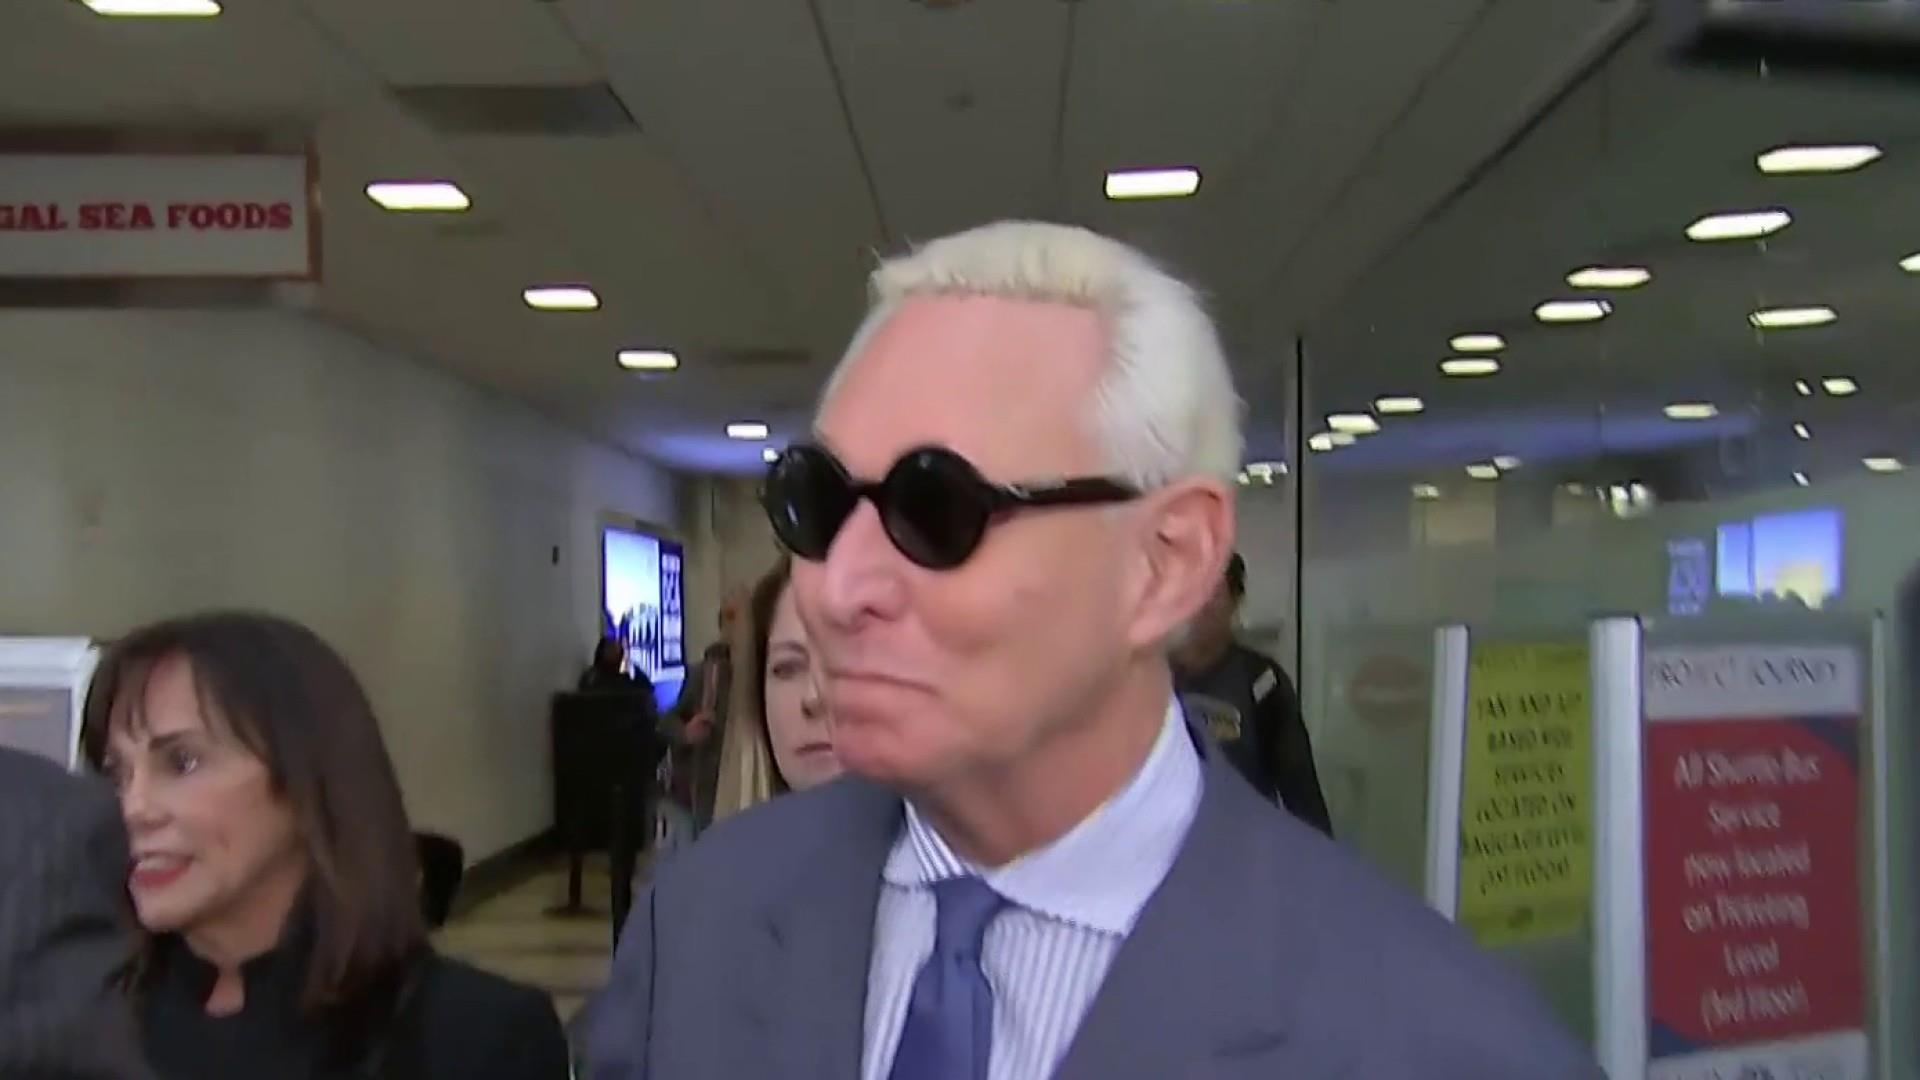 Judge puts strict gag order on Roger Stone, allows him to remain out of jail